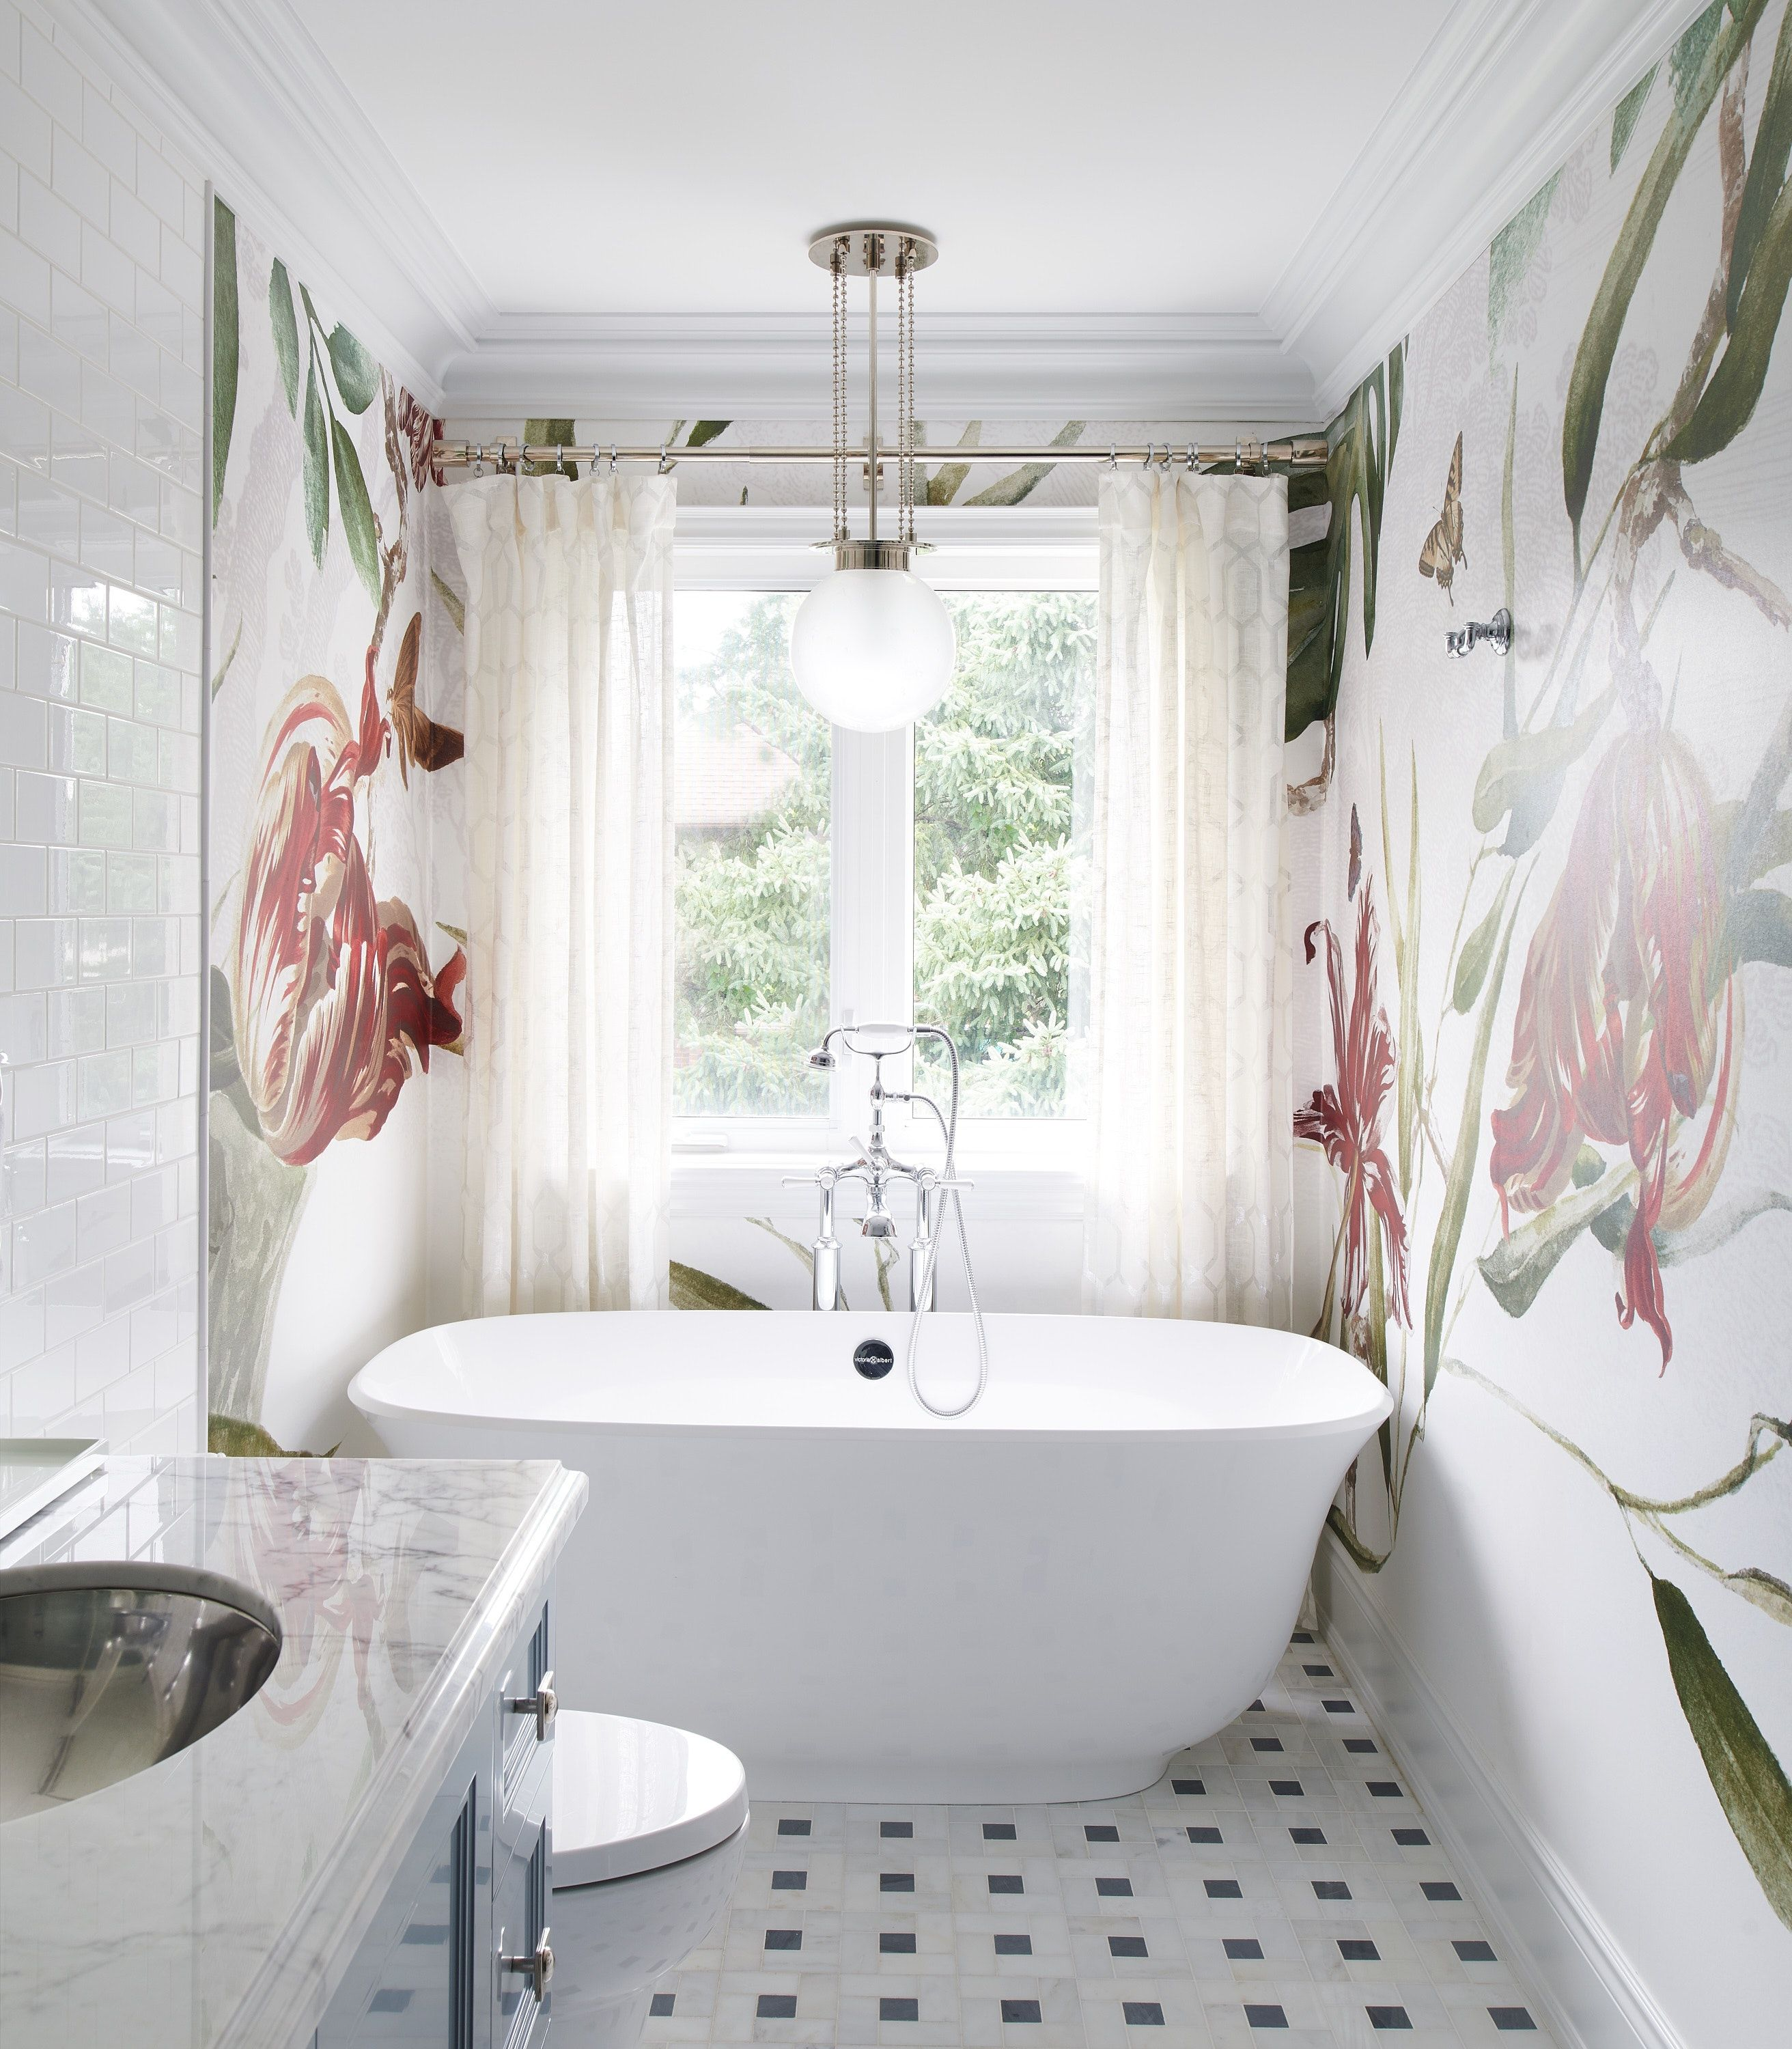 Private Residence. Whimsical Bathroom With Floral Large